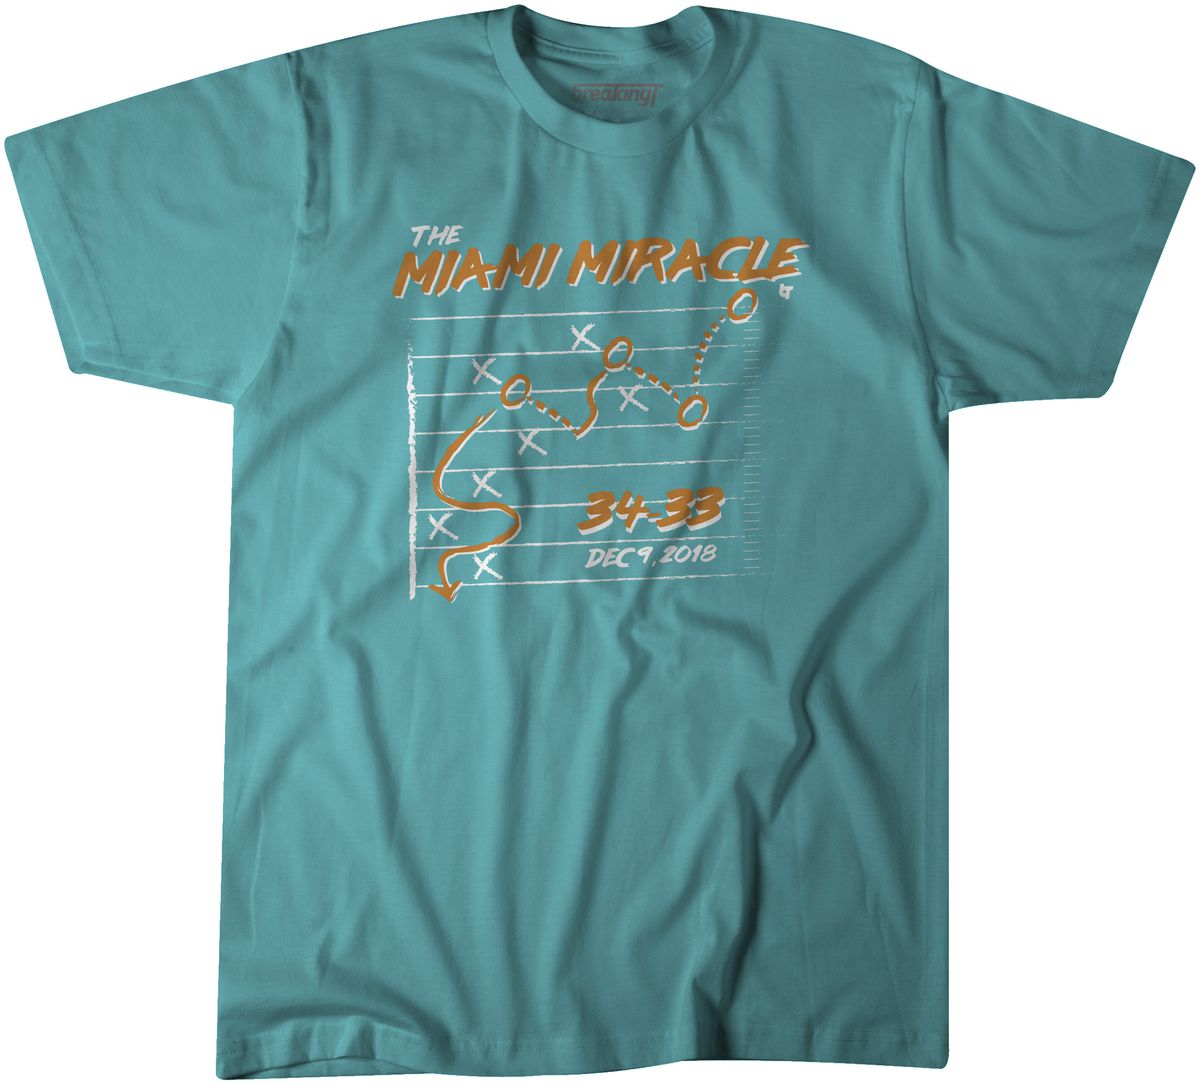 buy online f5bf4 2ce4e Miami Miracle t-shirts now available - The Phinsider